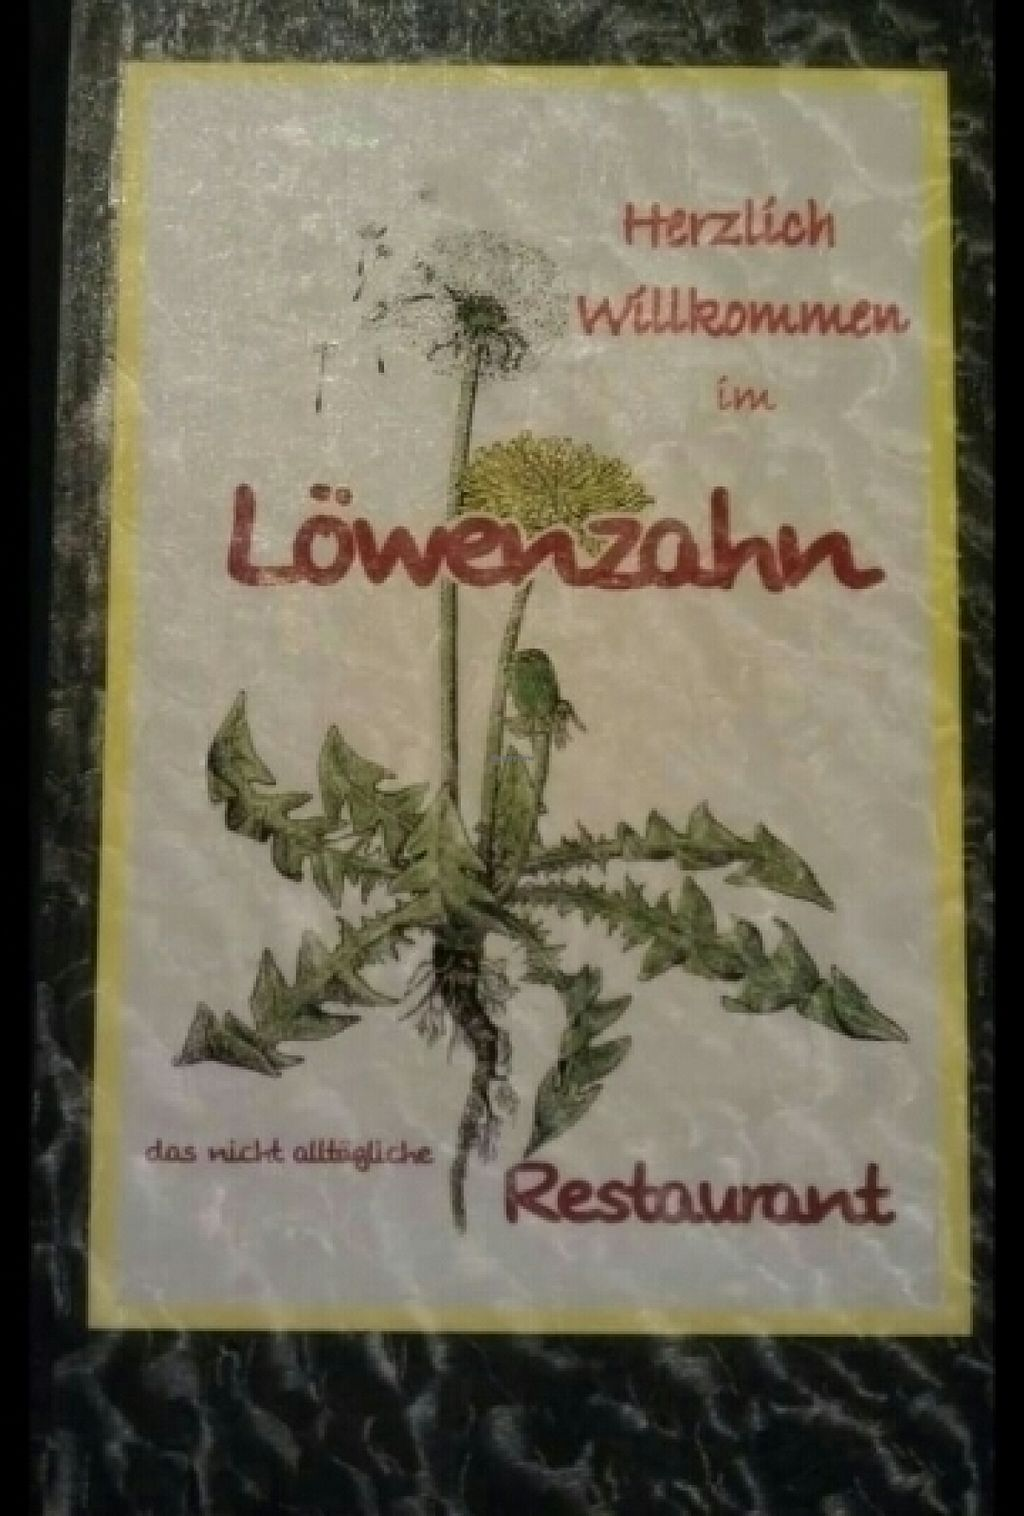 """Photo of Lowenzahn  by <a href=""""/members/profile/LeniVo"""">LeniVo</a> <br/>menu  <br/> July 16, 2016  - <a href='/contact/abuse/image/57567/160210'>Report</a>"""